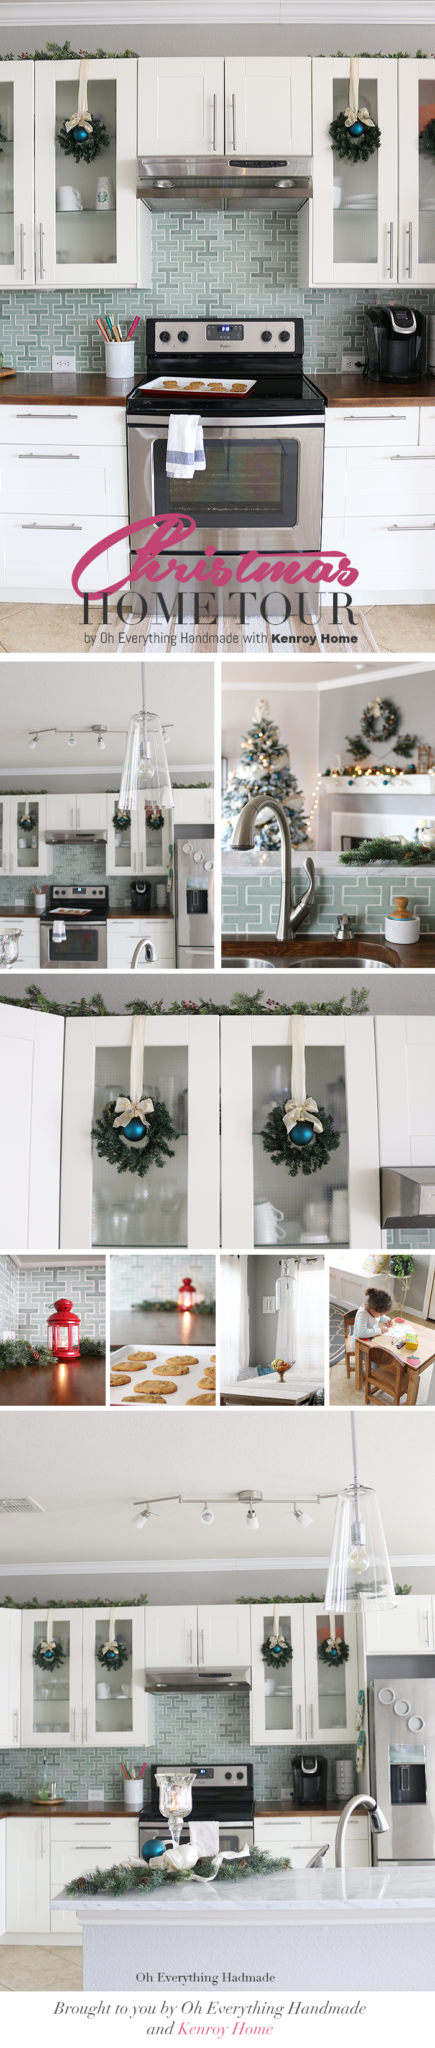 Christmas Home tour by OhEverythingHandmade with KenroyHome Pin